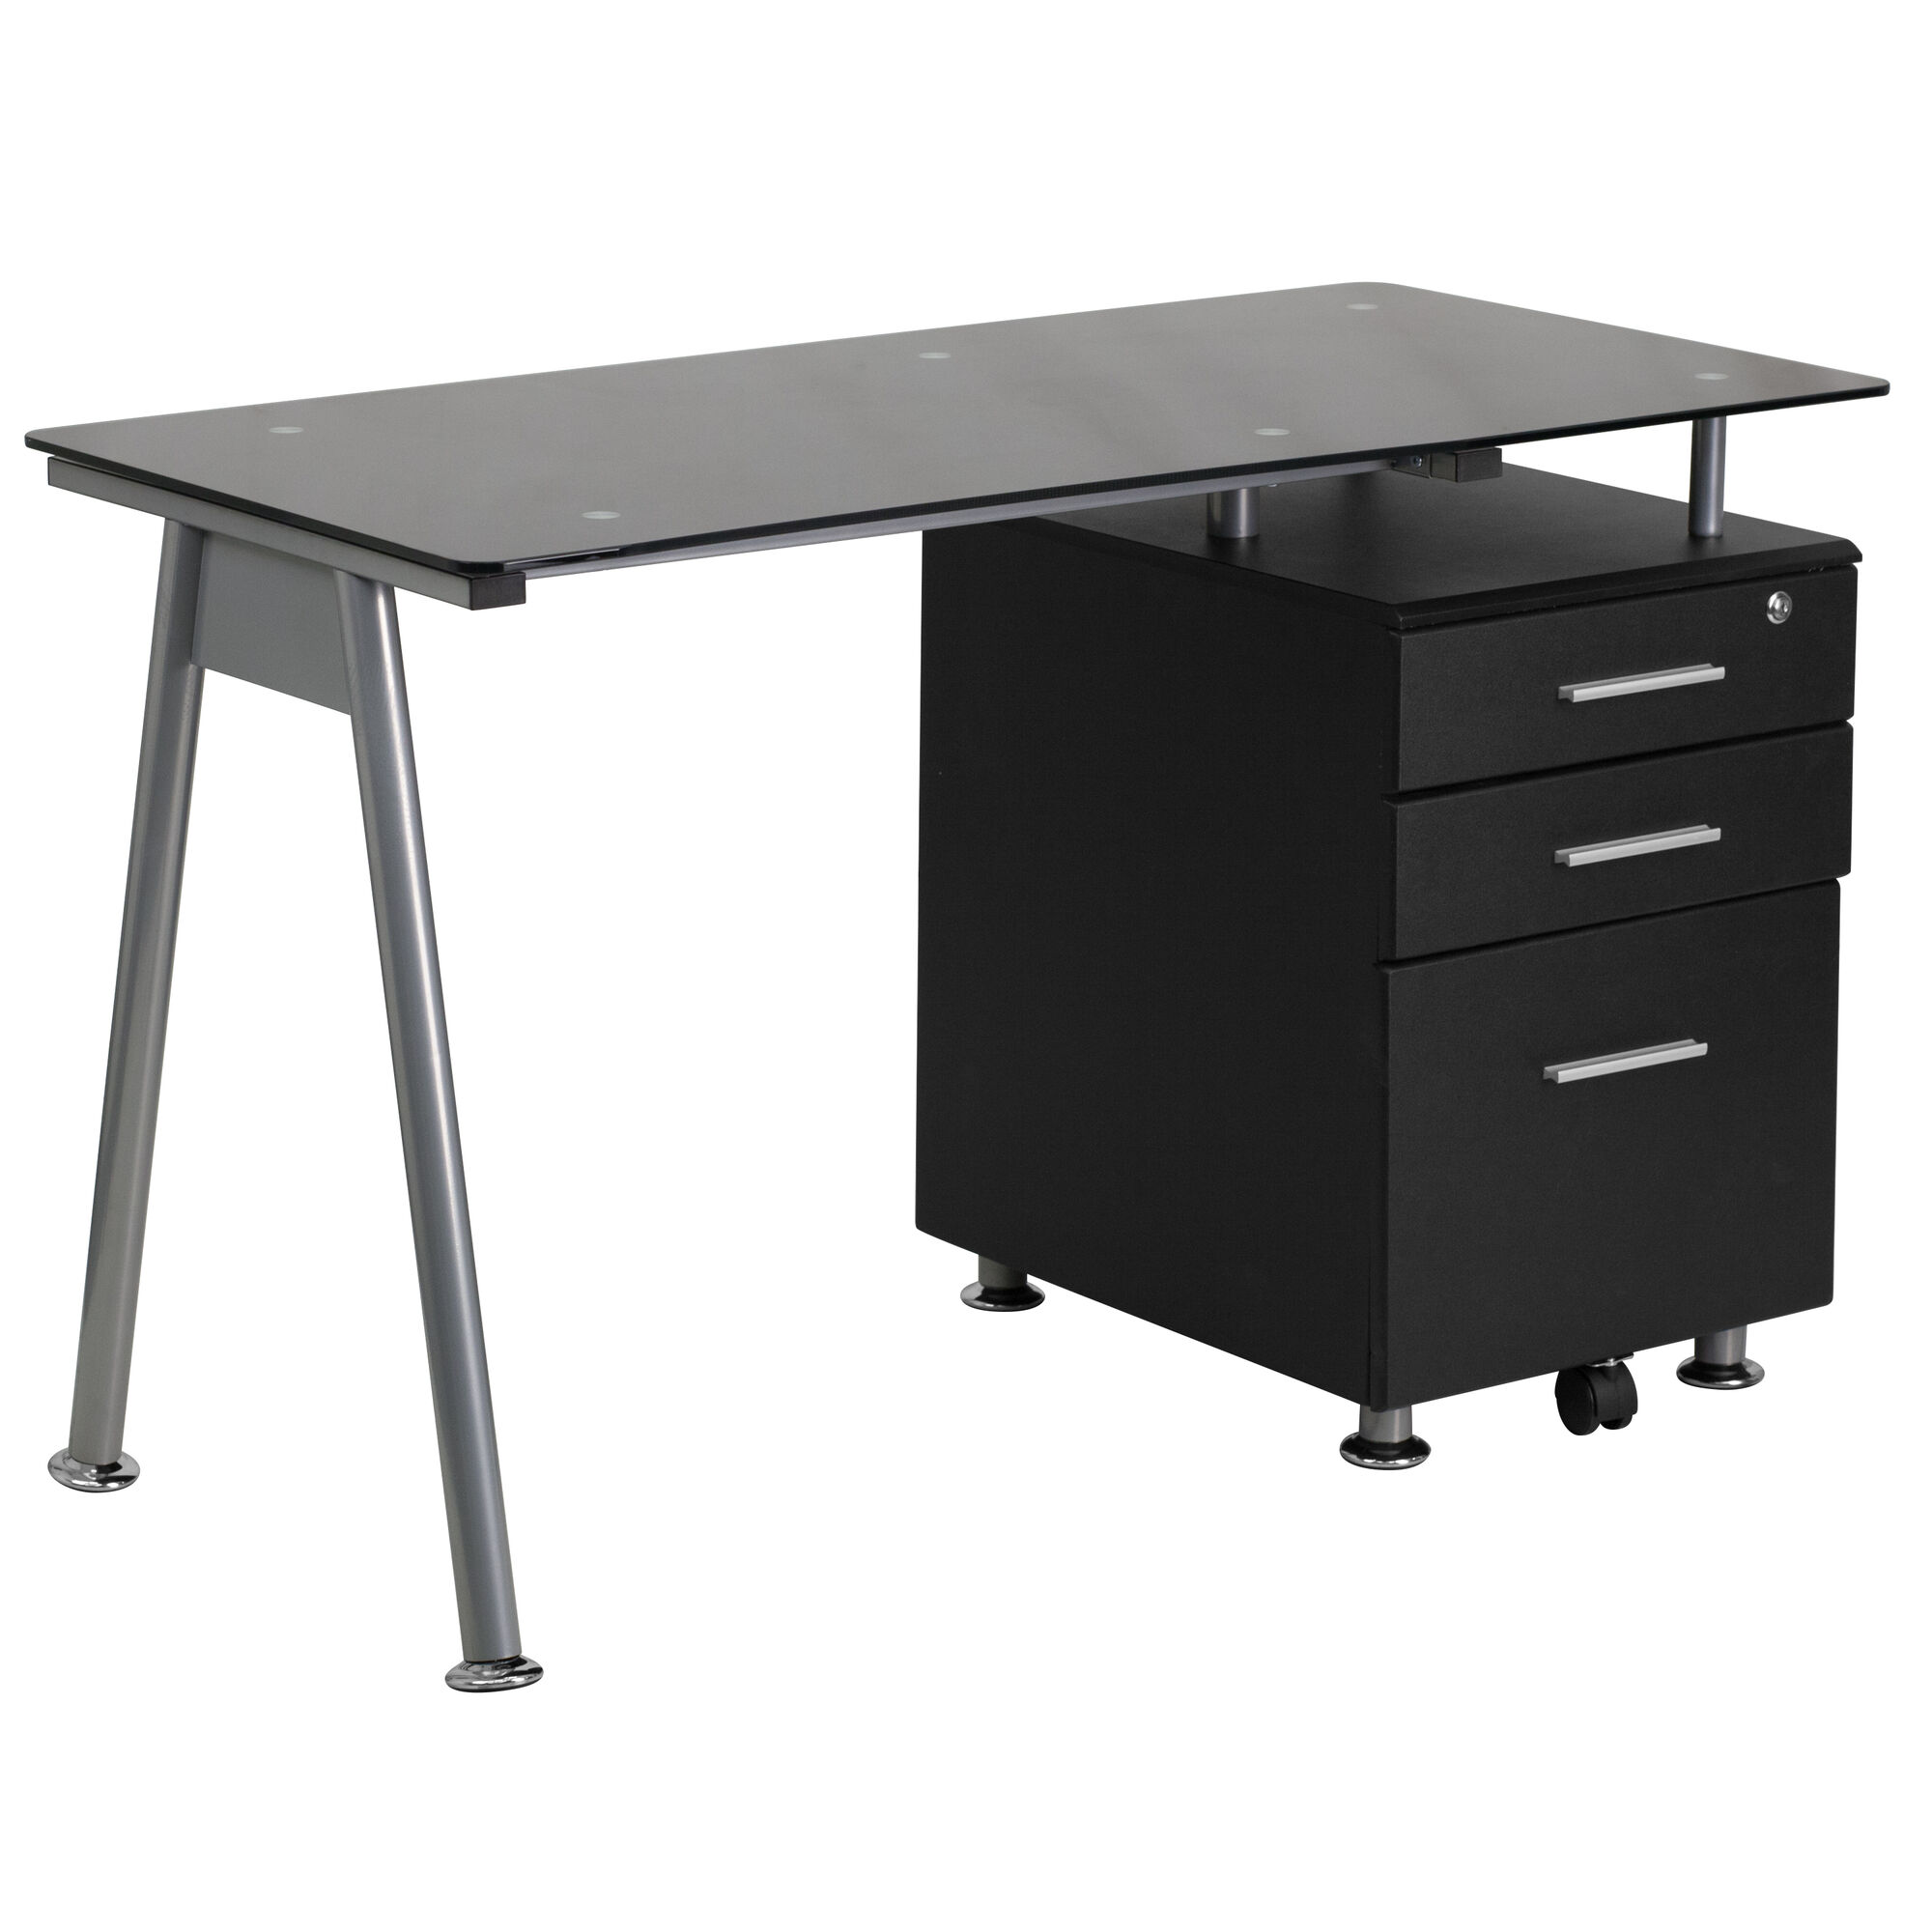 drawer gb desk natural material workstations durable computer is products brown desks add a with solid wood light on ikea en unit locking hemnes